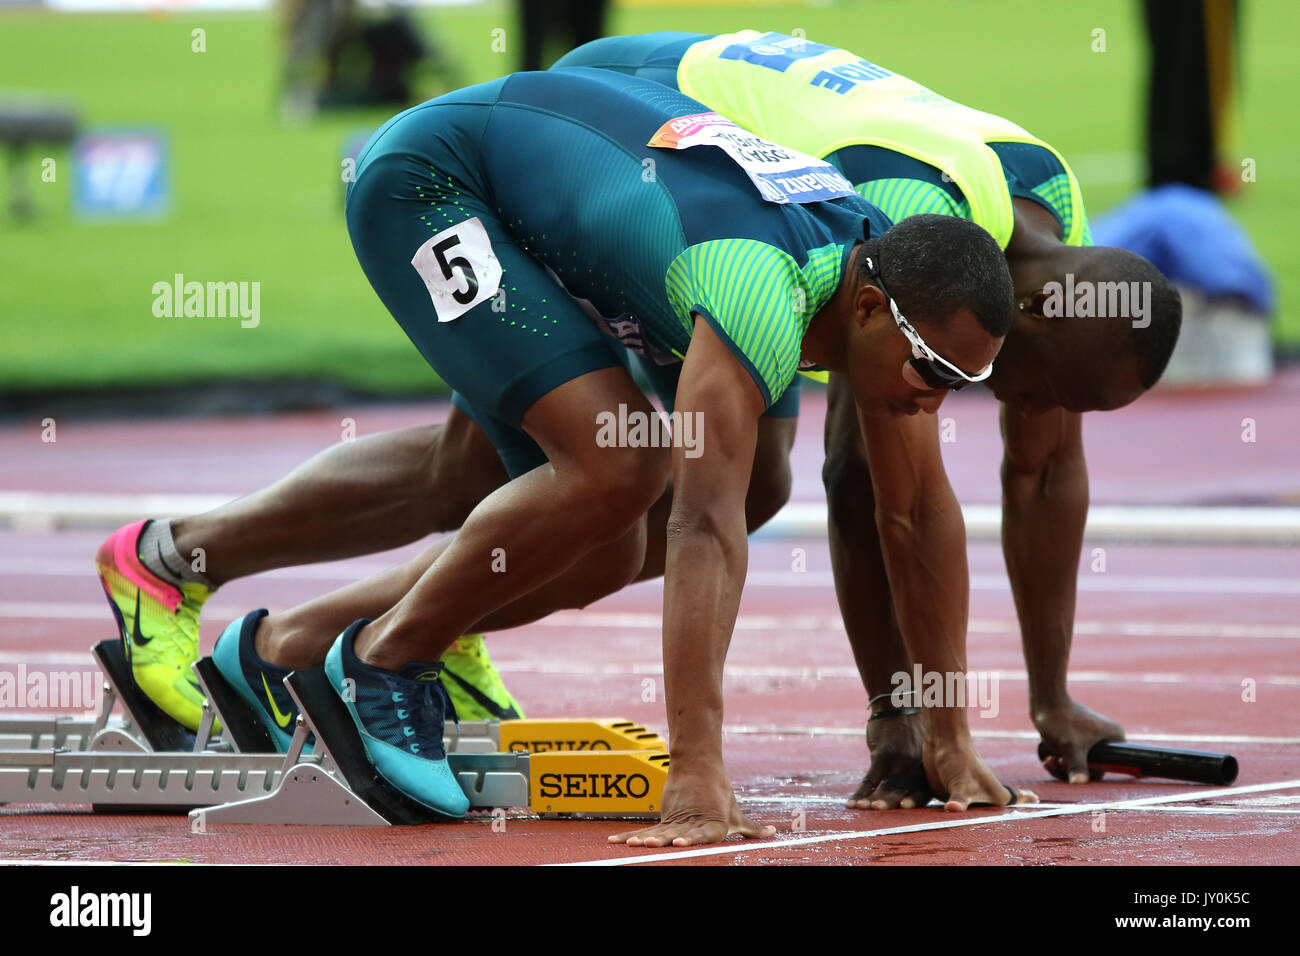 100 metres athletes stock photos 100 metres athletes for Ricardo costa